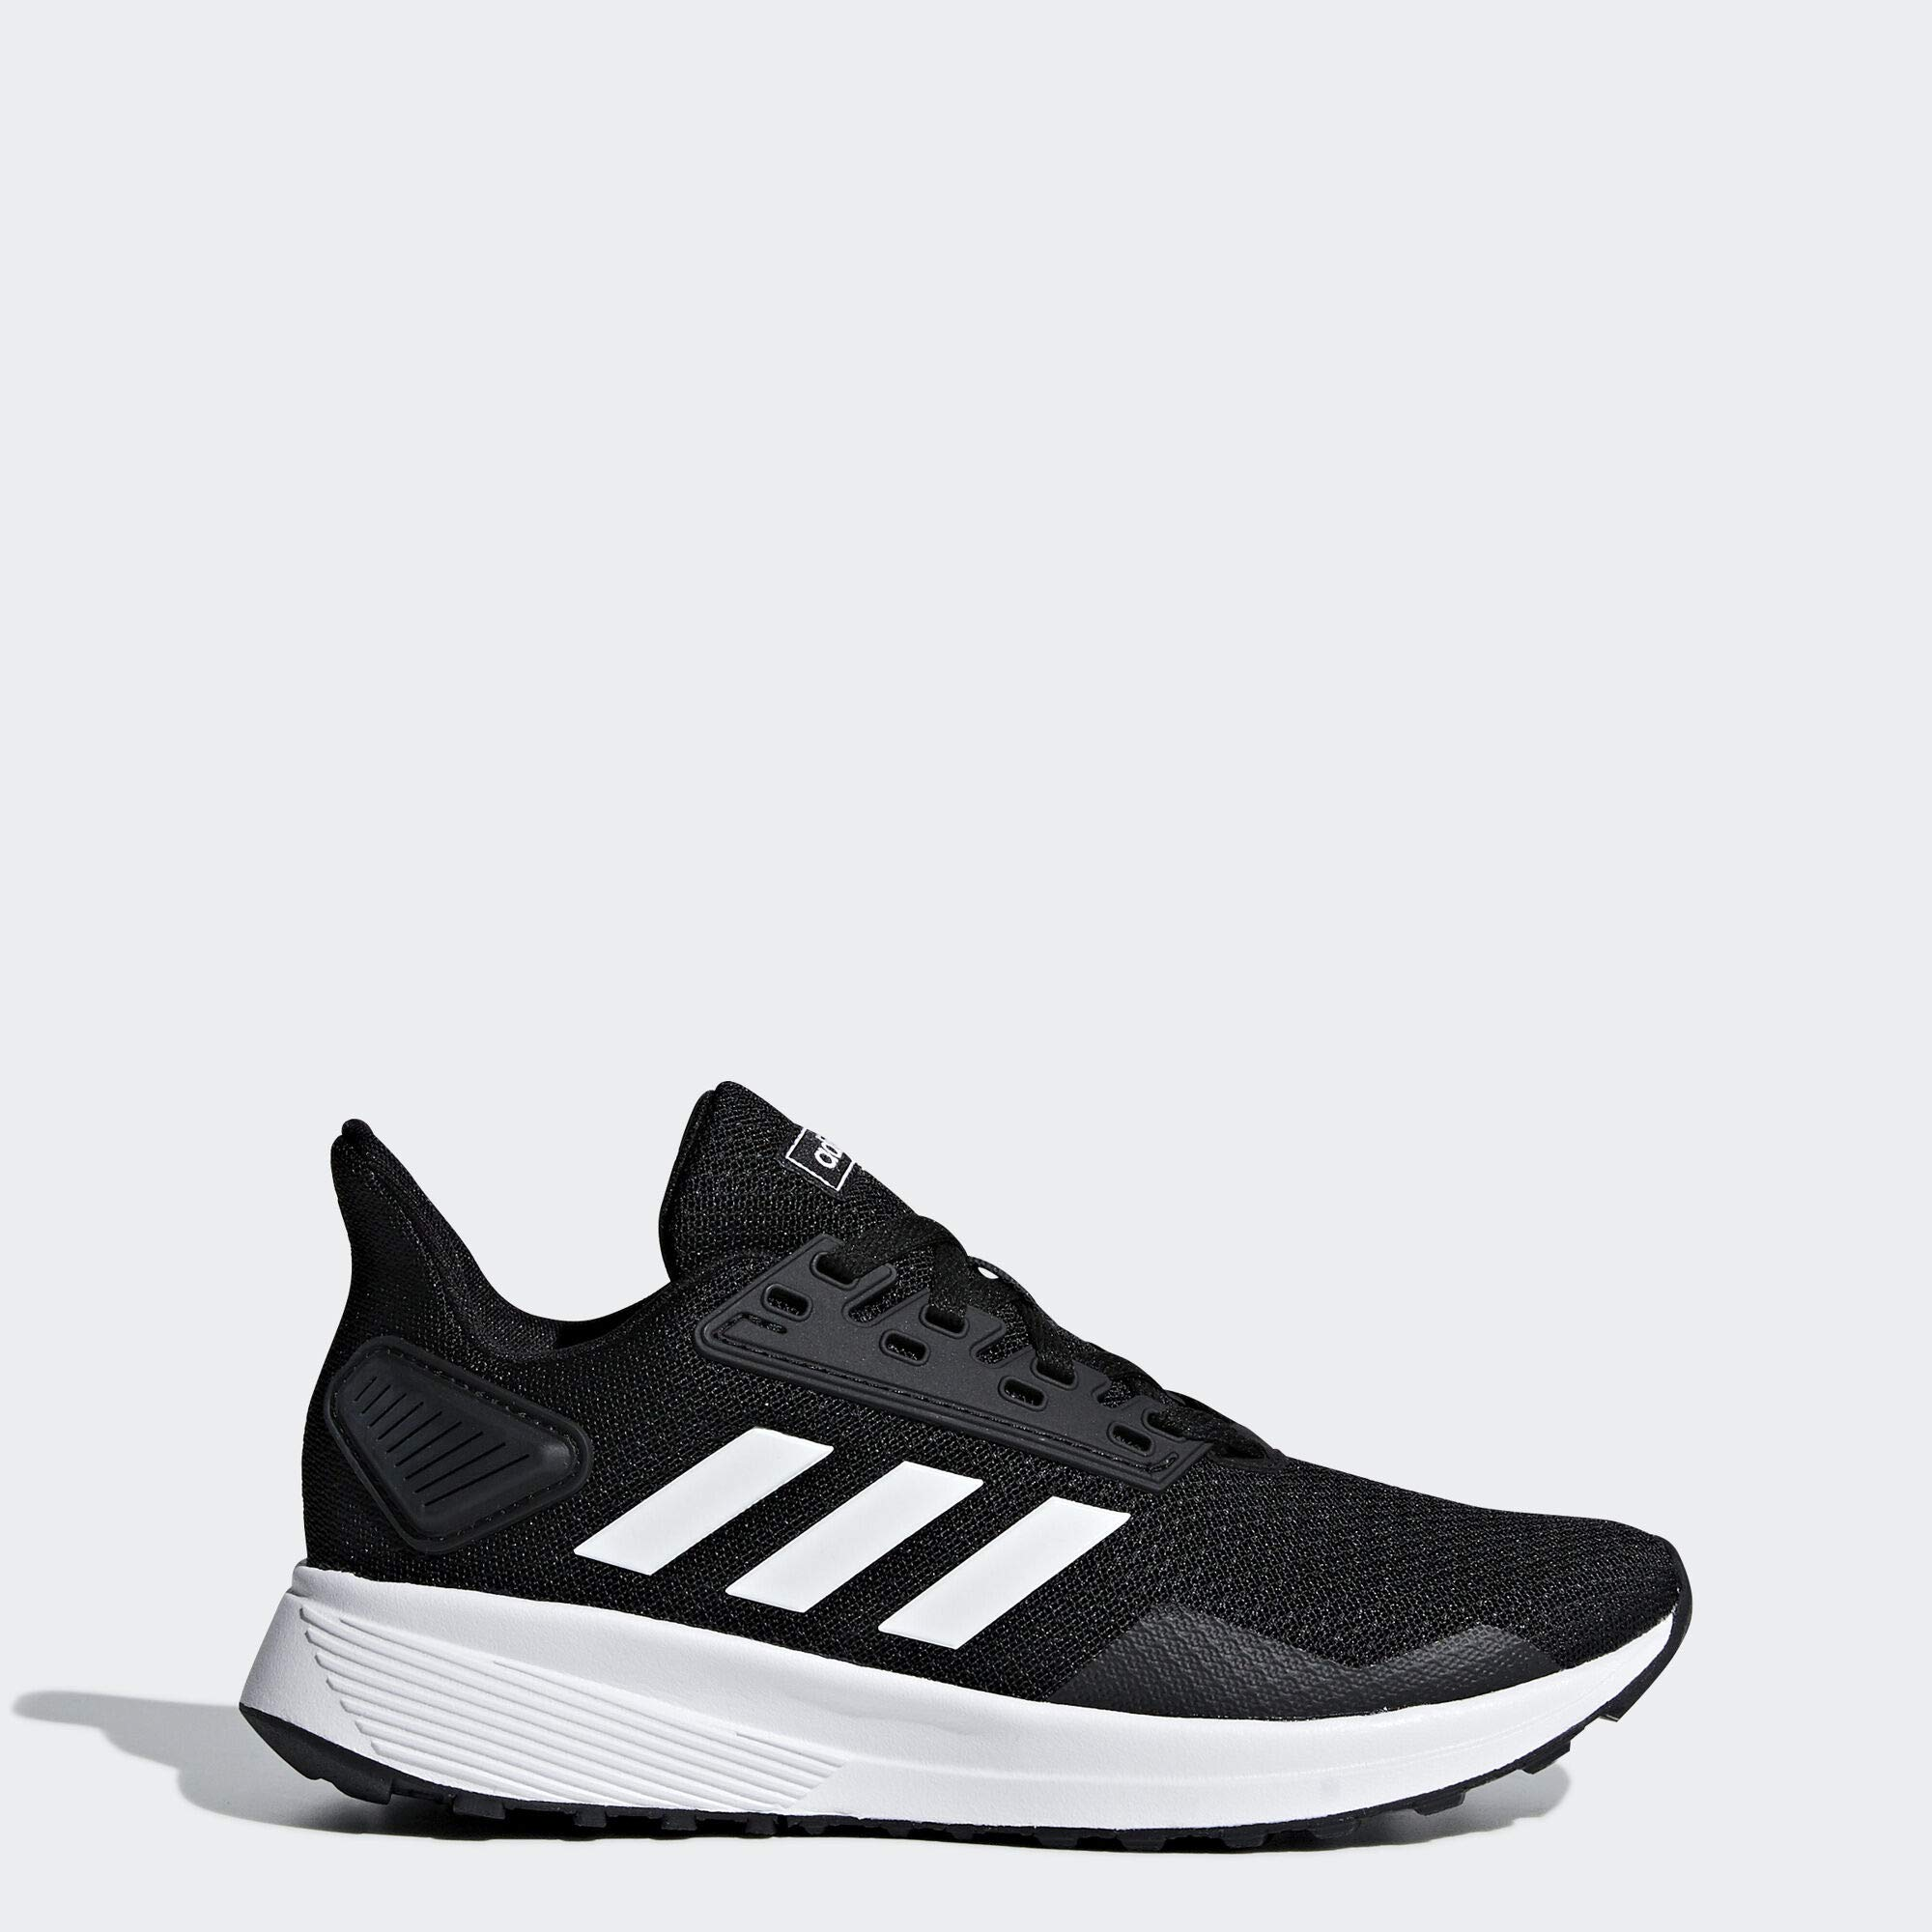 adidas Unisex Duramo 9 Running Shoe White/Black, 11.5 M US Little Kid by adidas